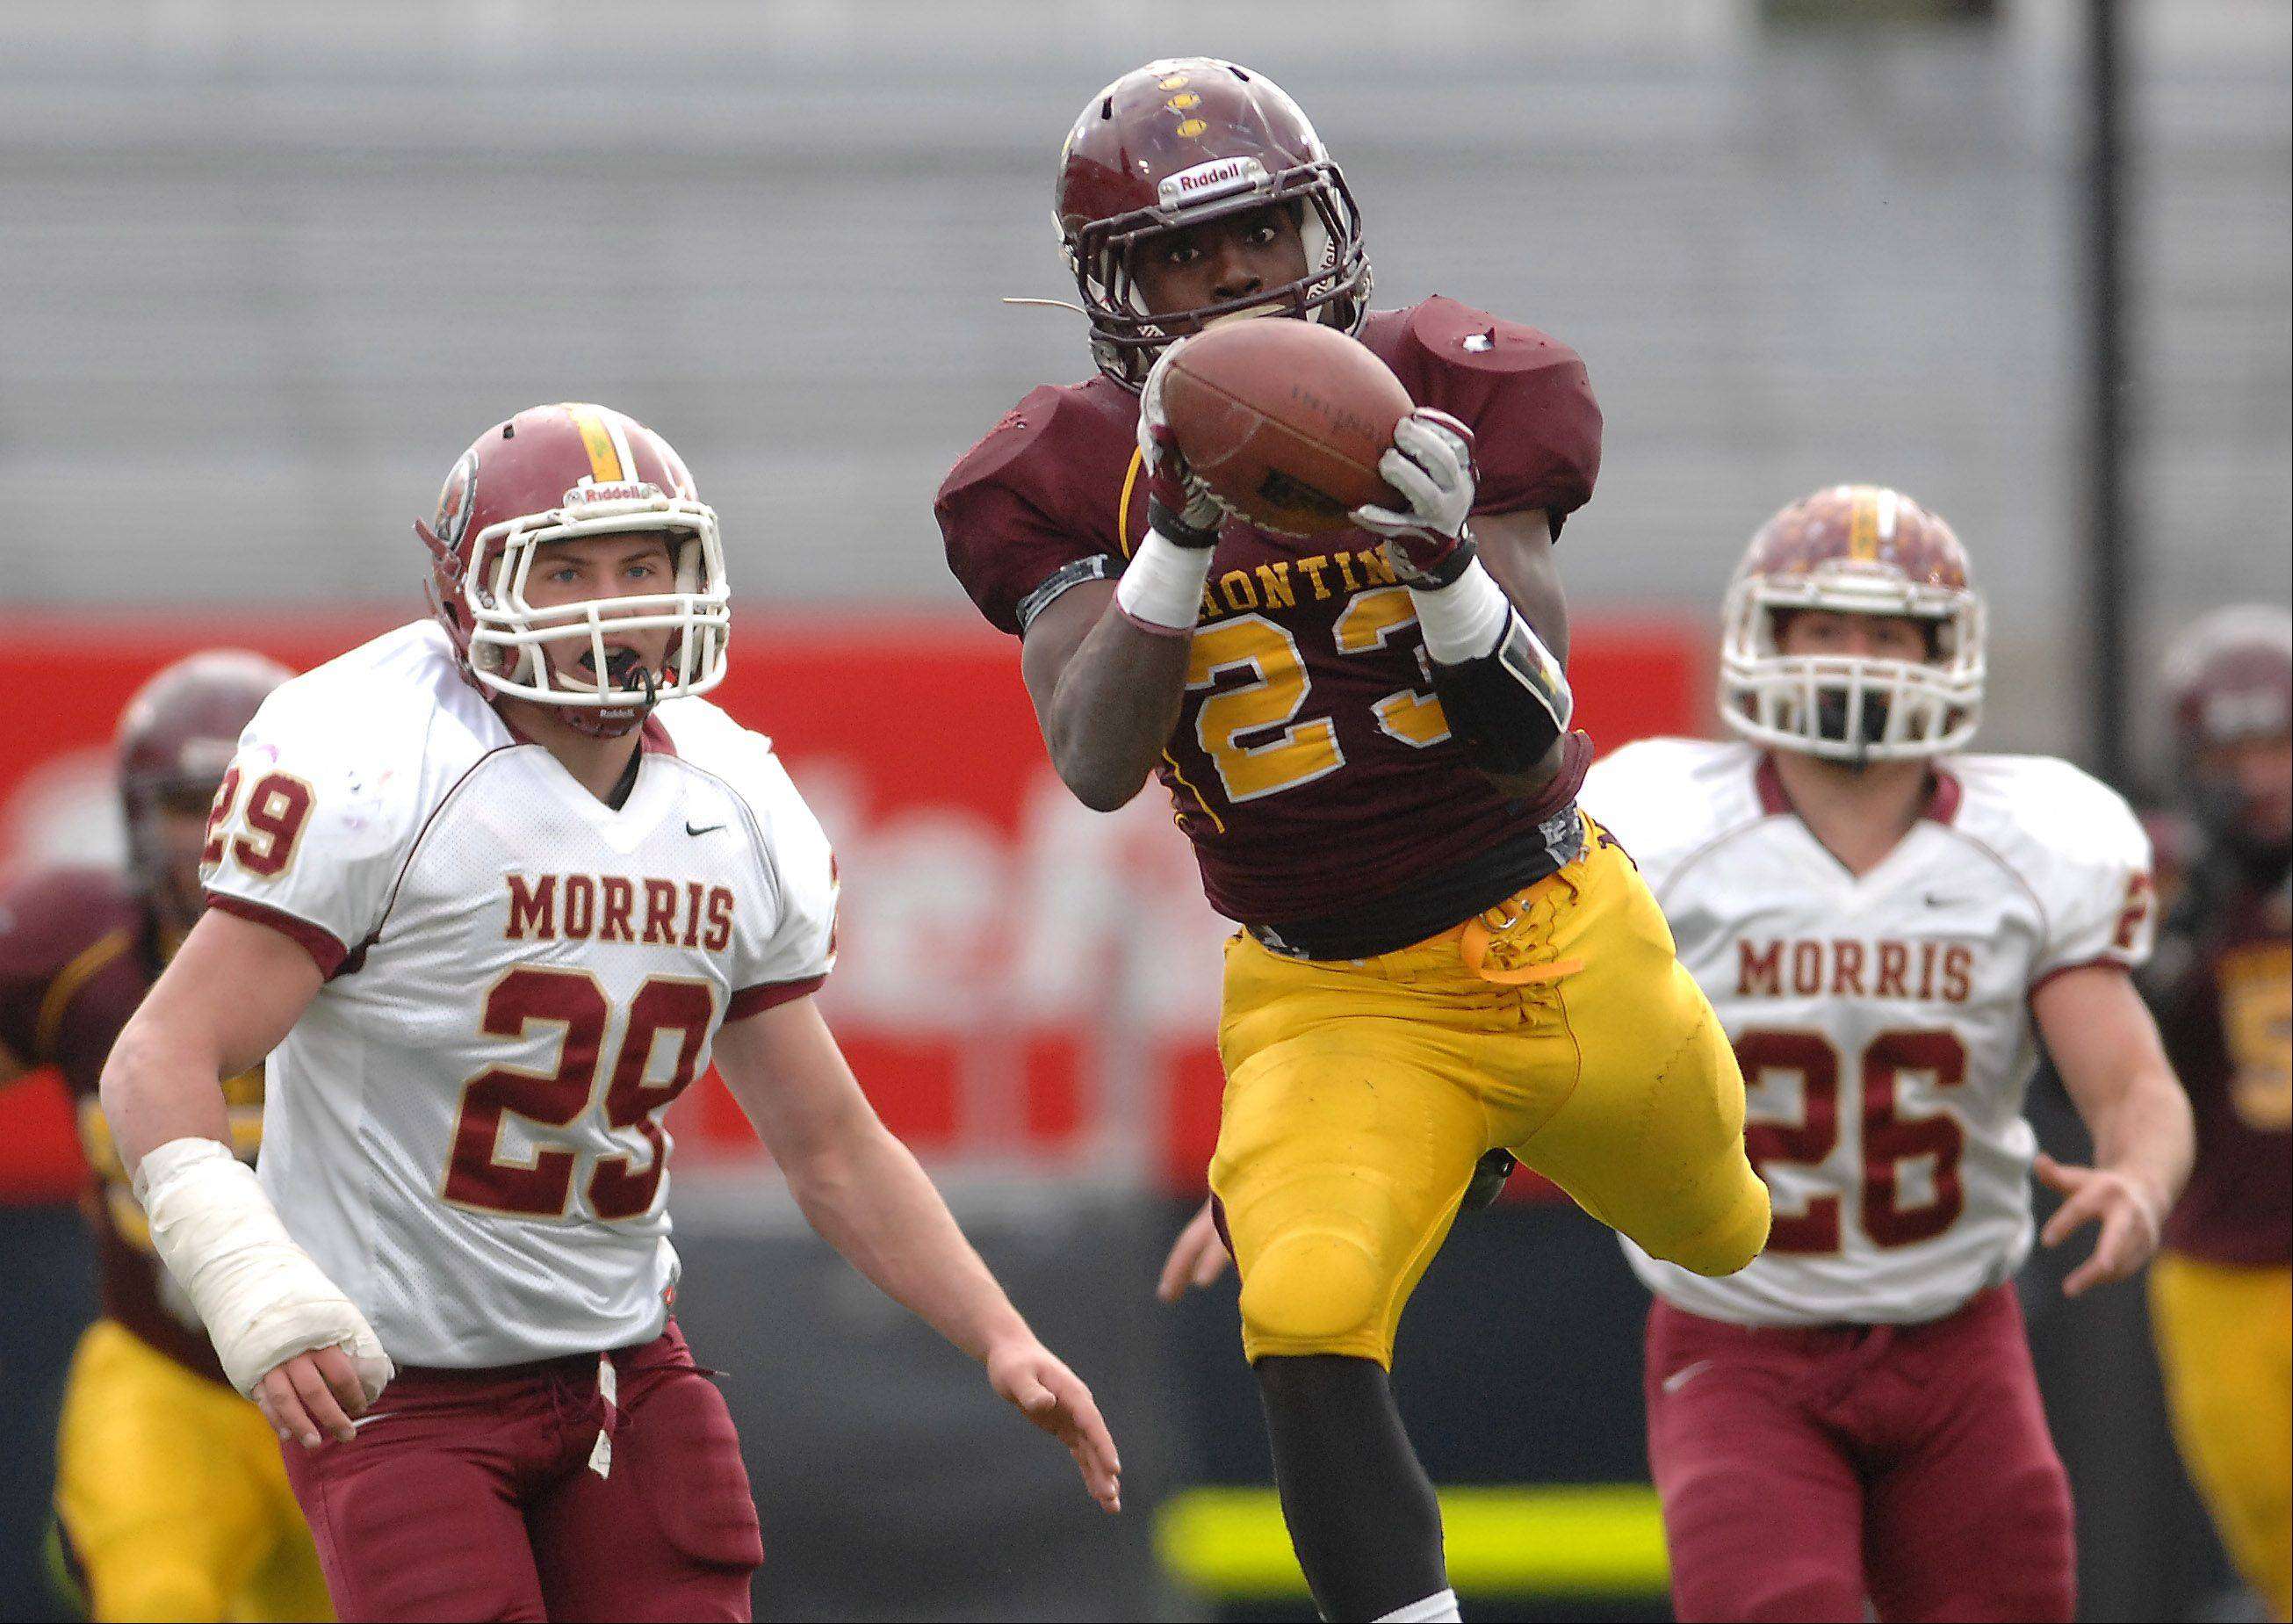 Montini's Dimitri Taylor, 23, hauls in a pass during Saturday's Class 5A state title game against Morris at Memorial Stadium in Champaign.